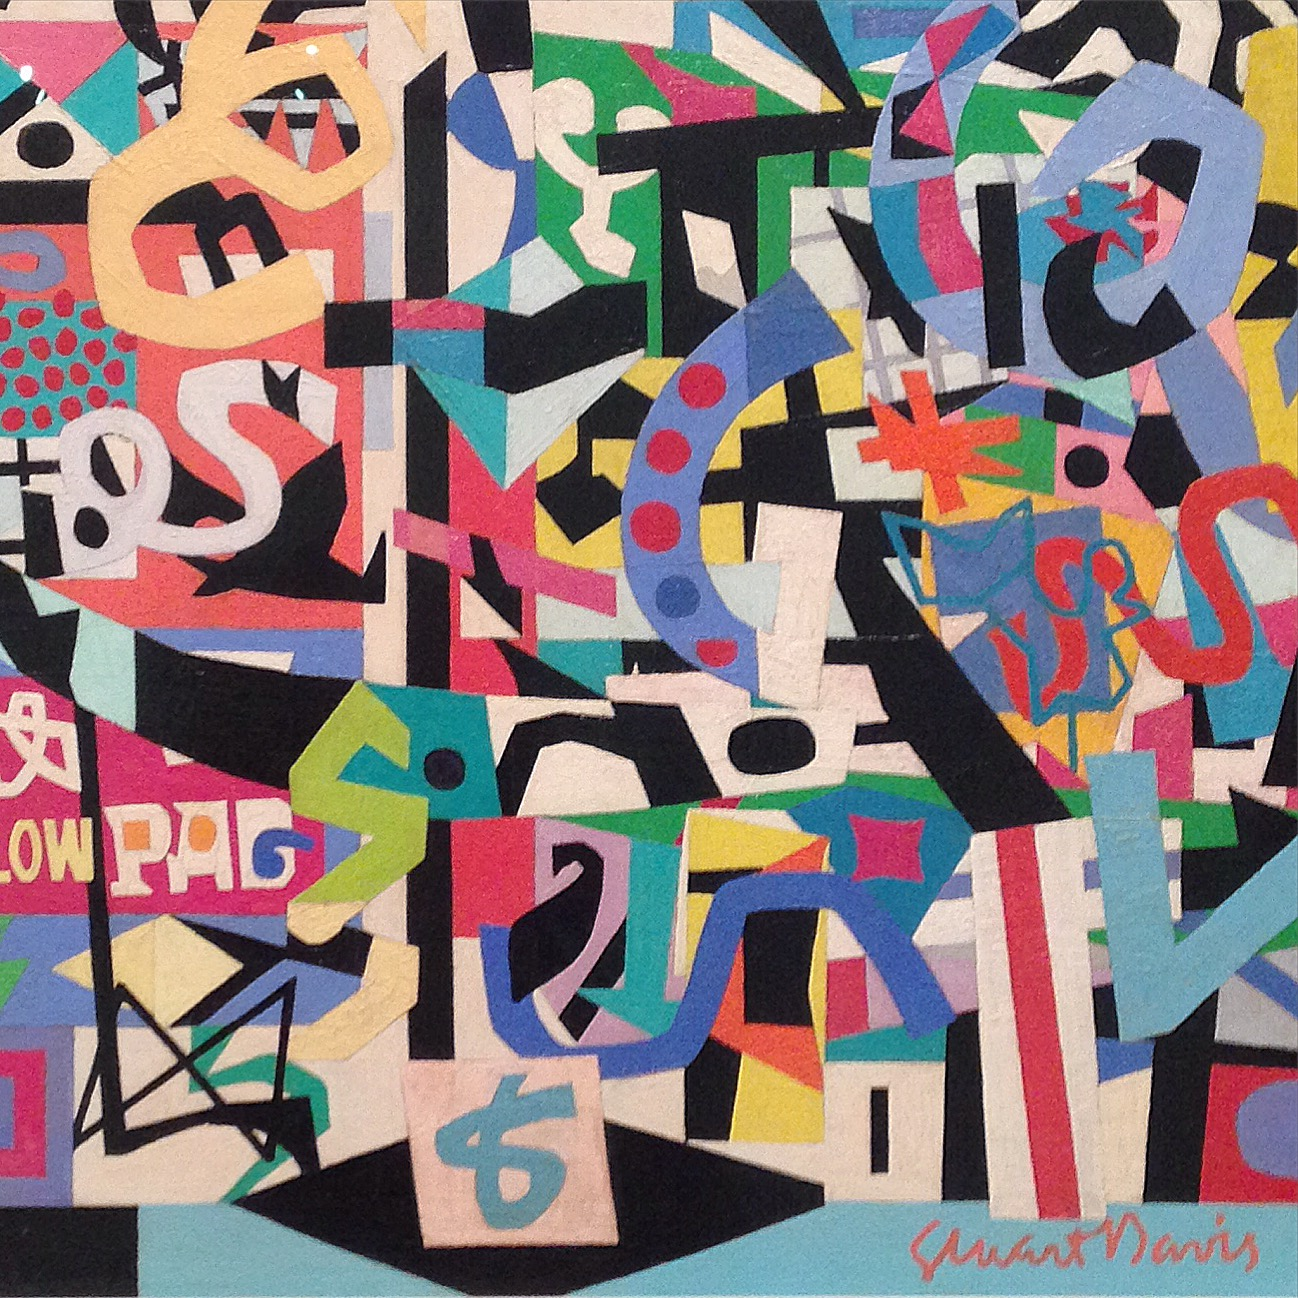 Stuart Davis retrospective at The Whitney Museum. Many pieces incorporated letterforms.